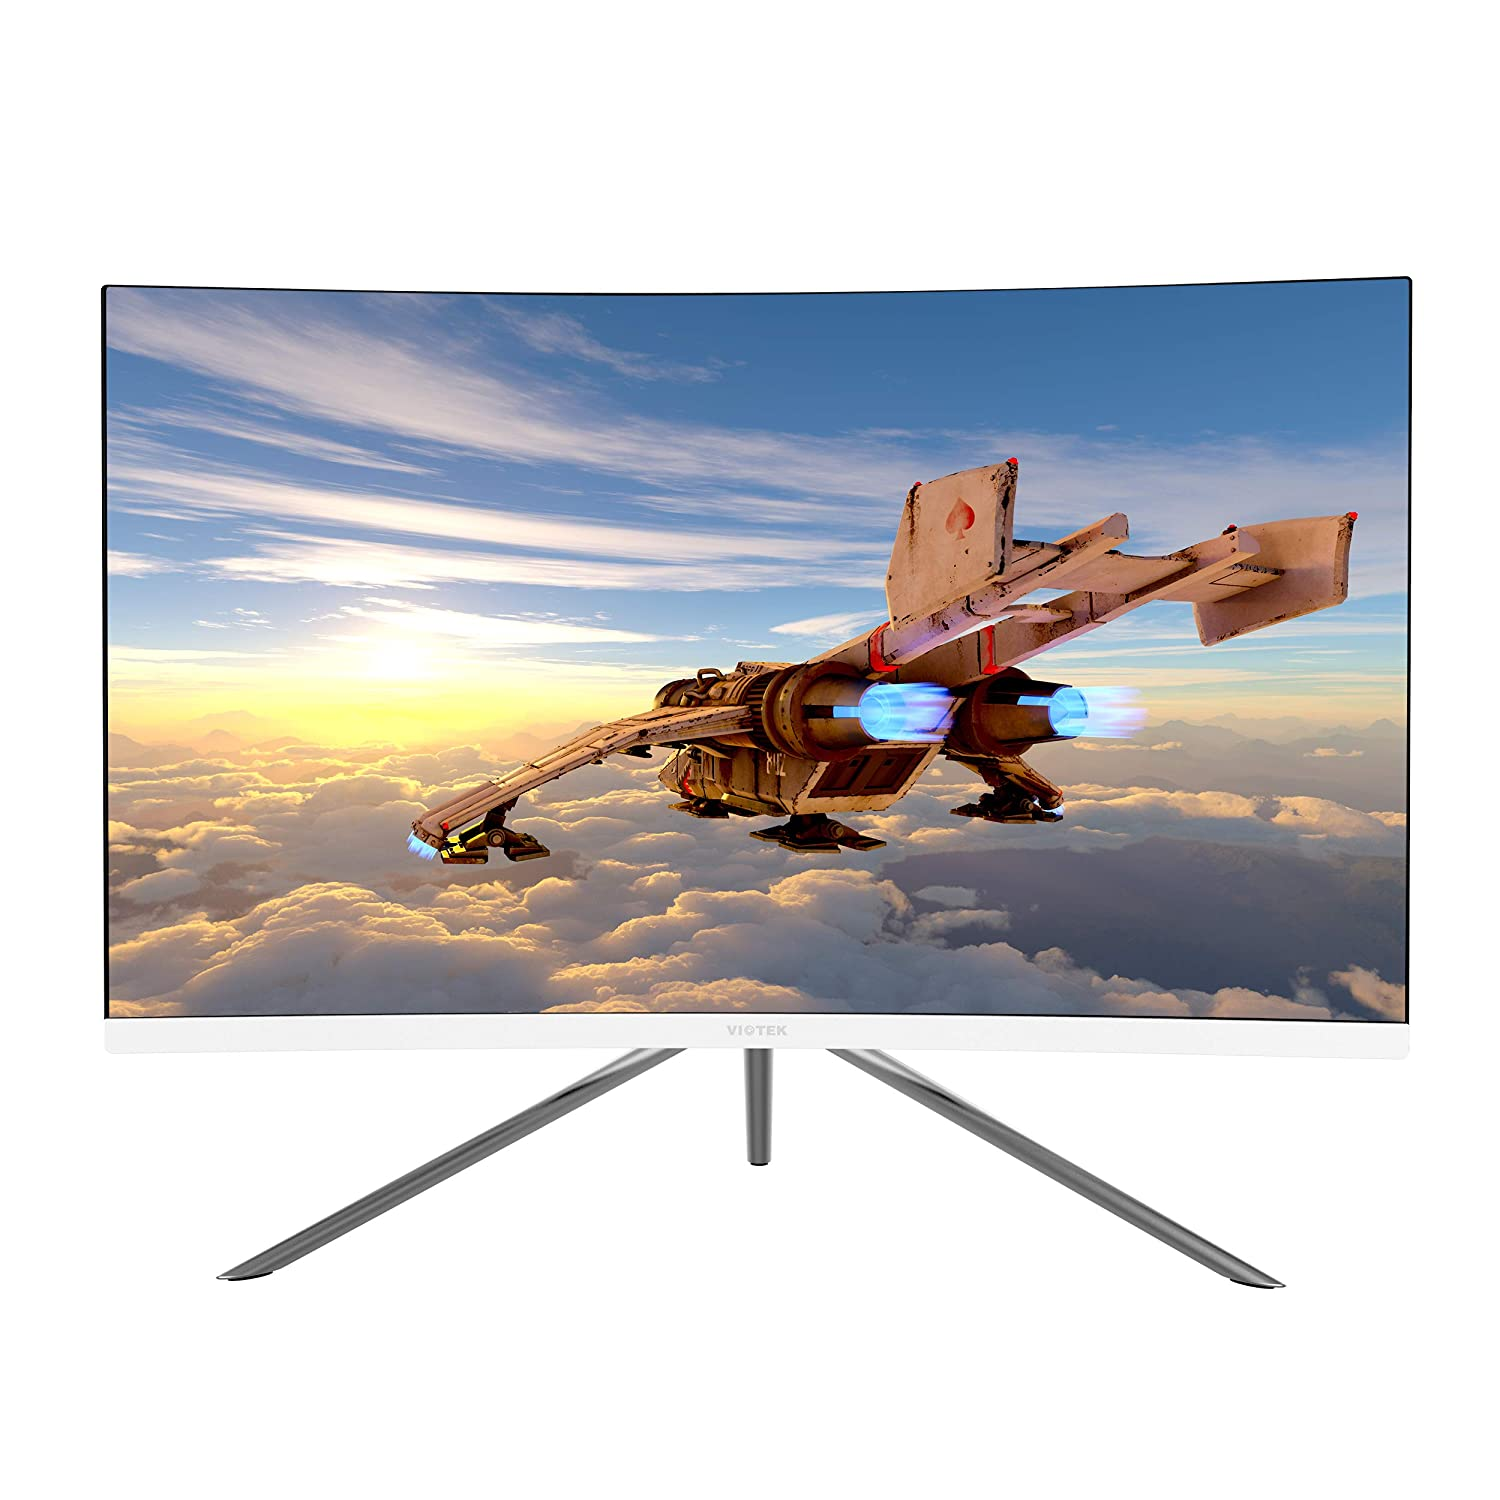 VIOTEK GN24C 24 Curved Monitor, Bezel-less Frame w/ Built-in Speakers-Full HD 1080p Monitor with 144Hz Refresh Rate, HDMI, DP, VESA GN24CB